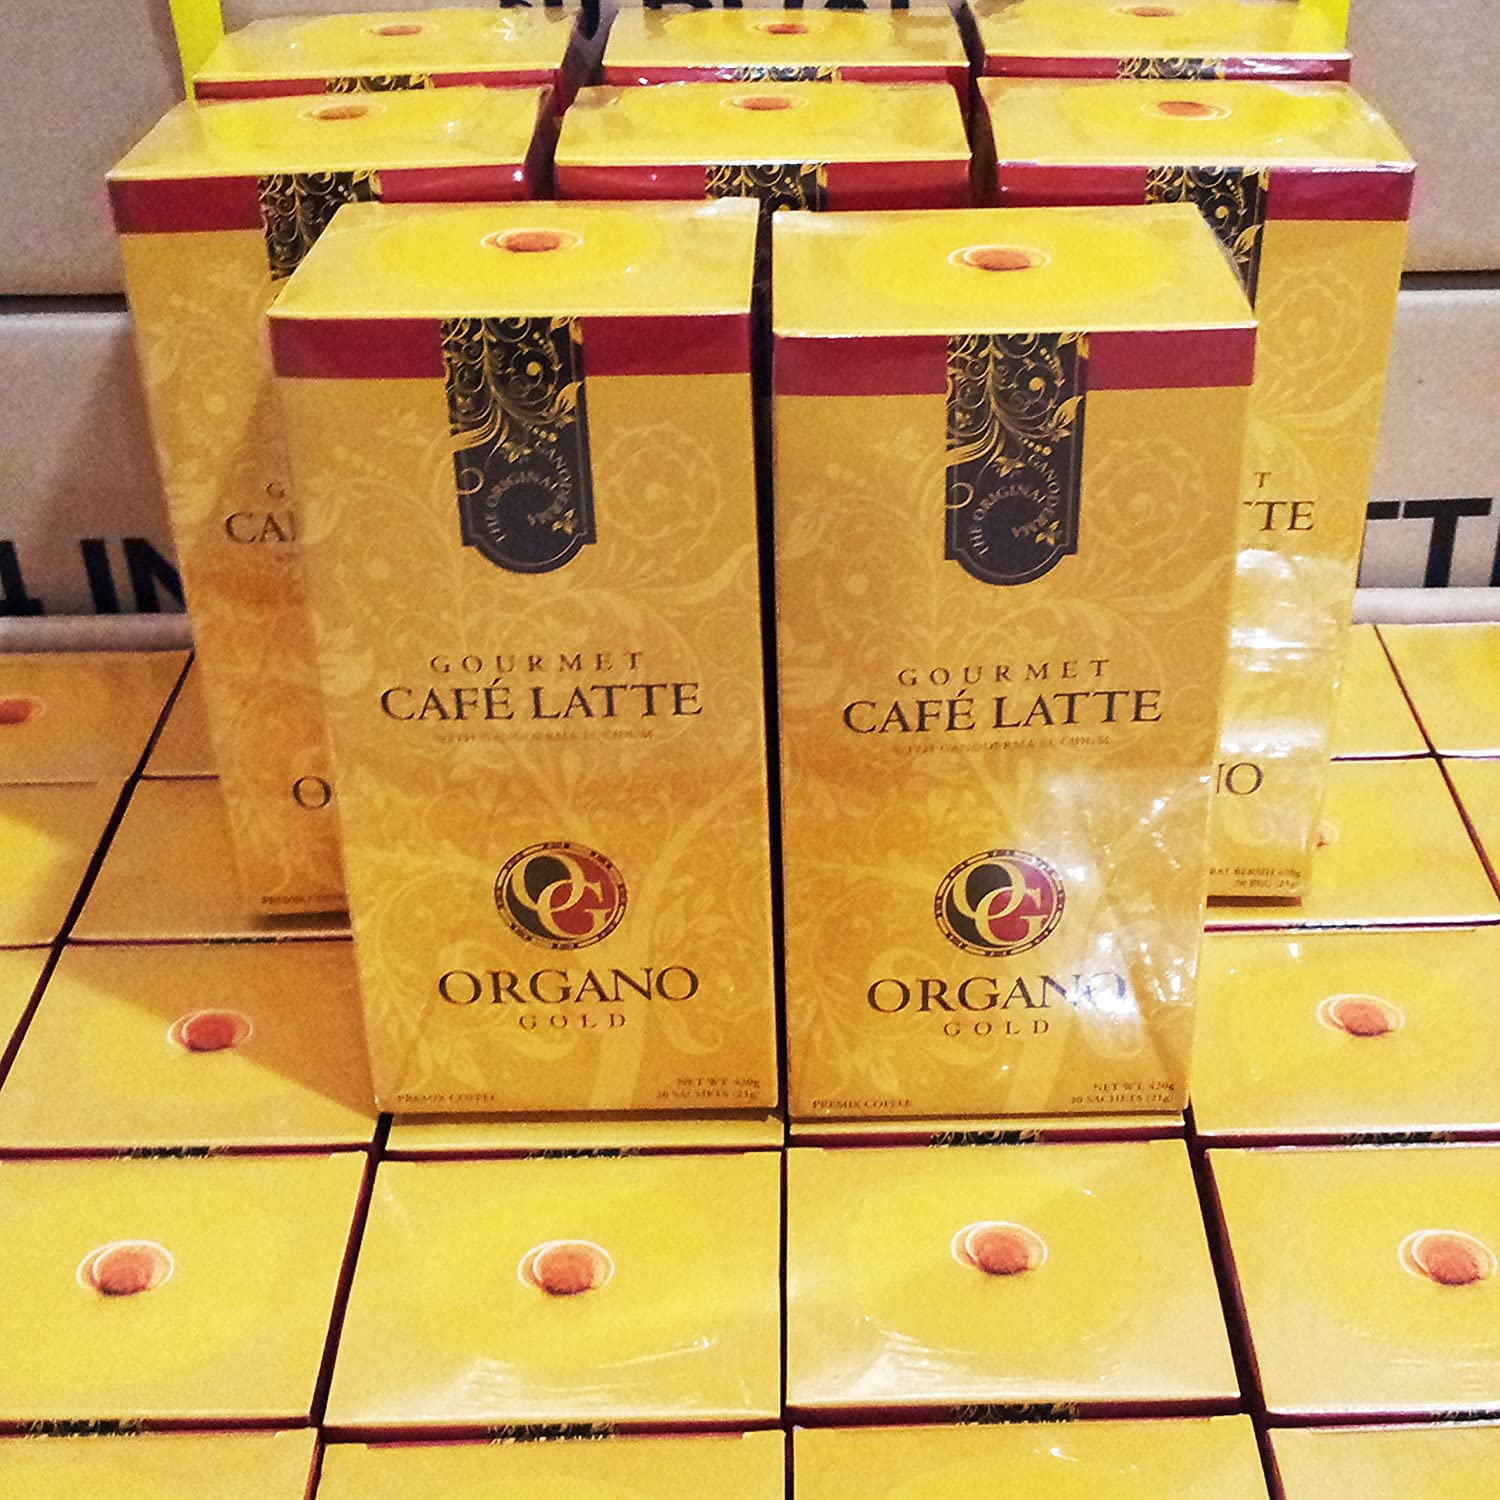 8 boxes organo gold gourmet cafe latte with 100